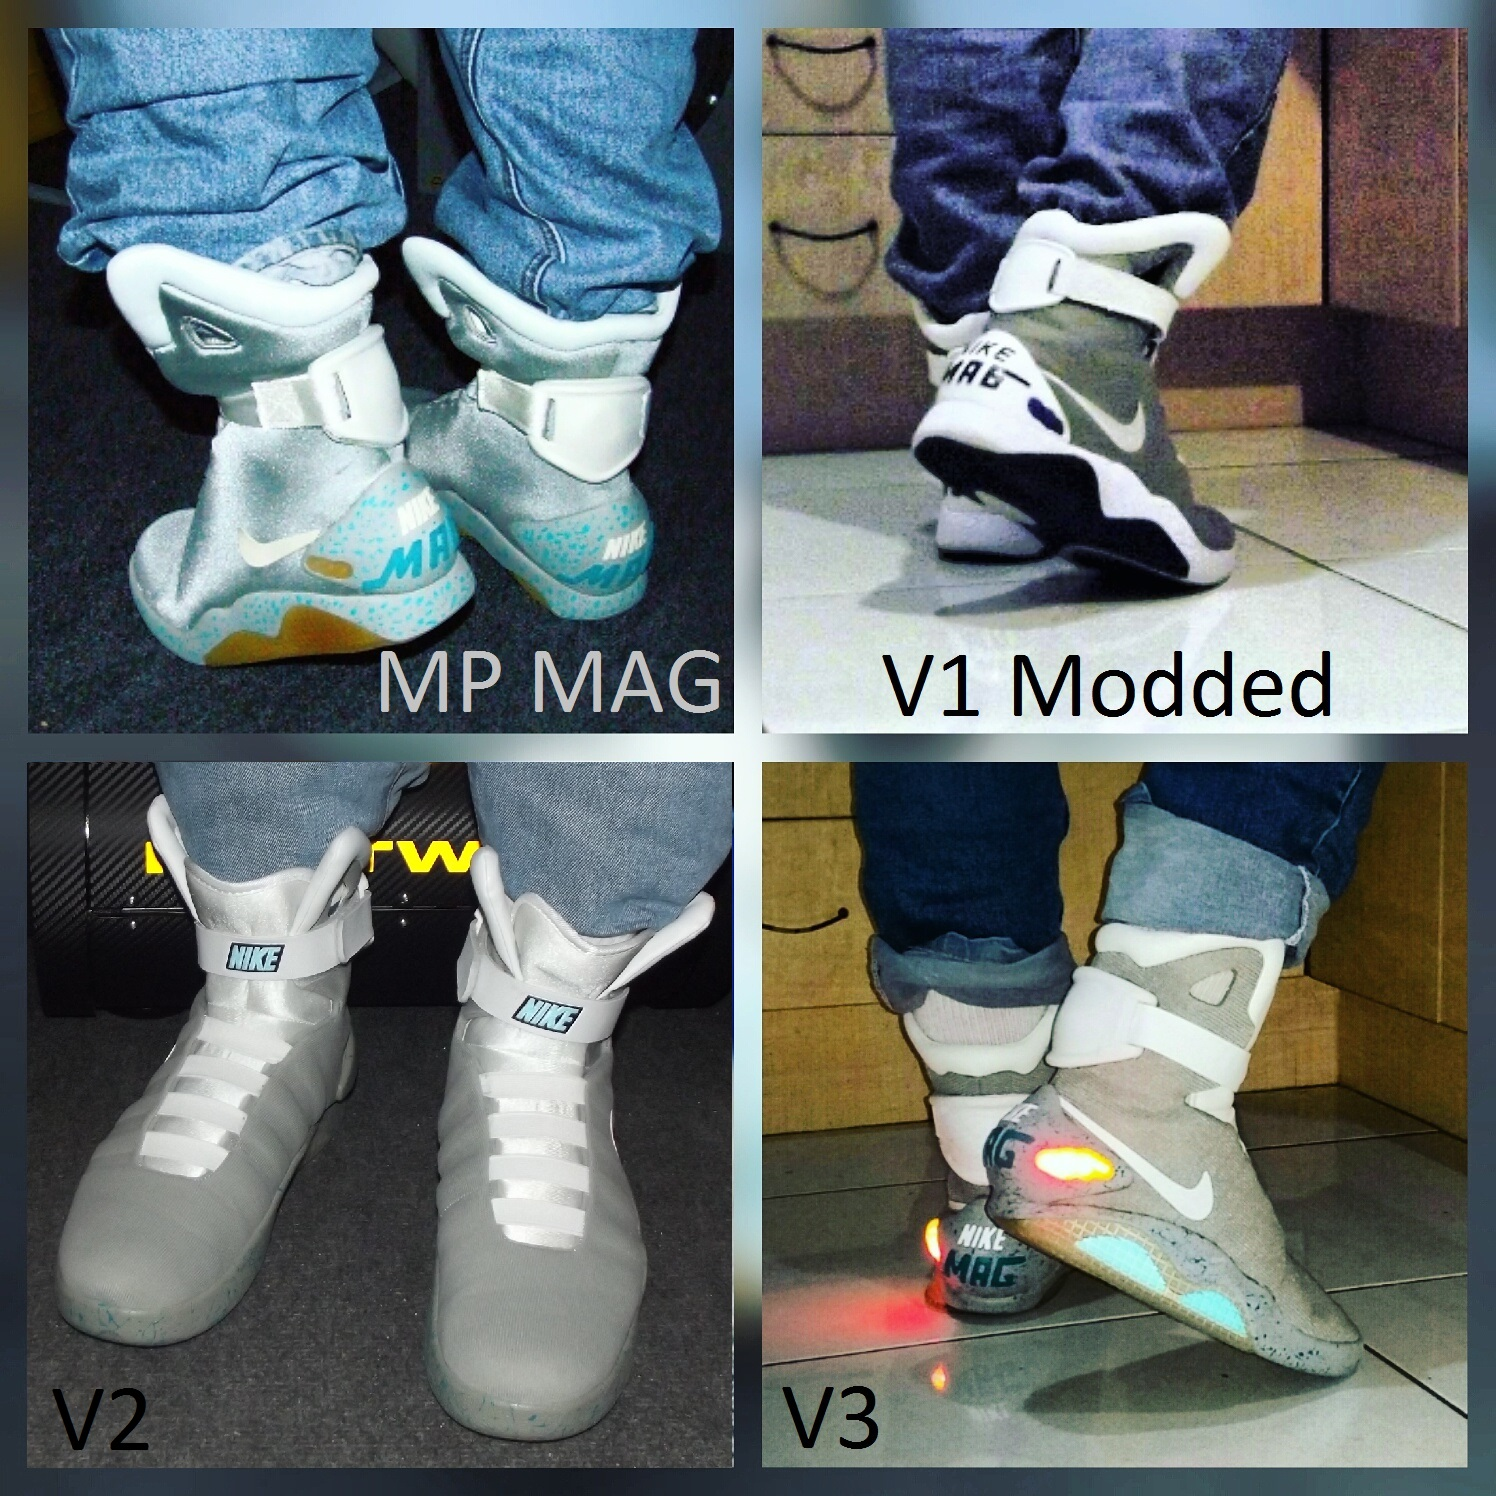 Official V3 Nike Mag Replica Thread V3 Discussion Thread